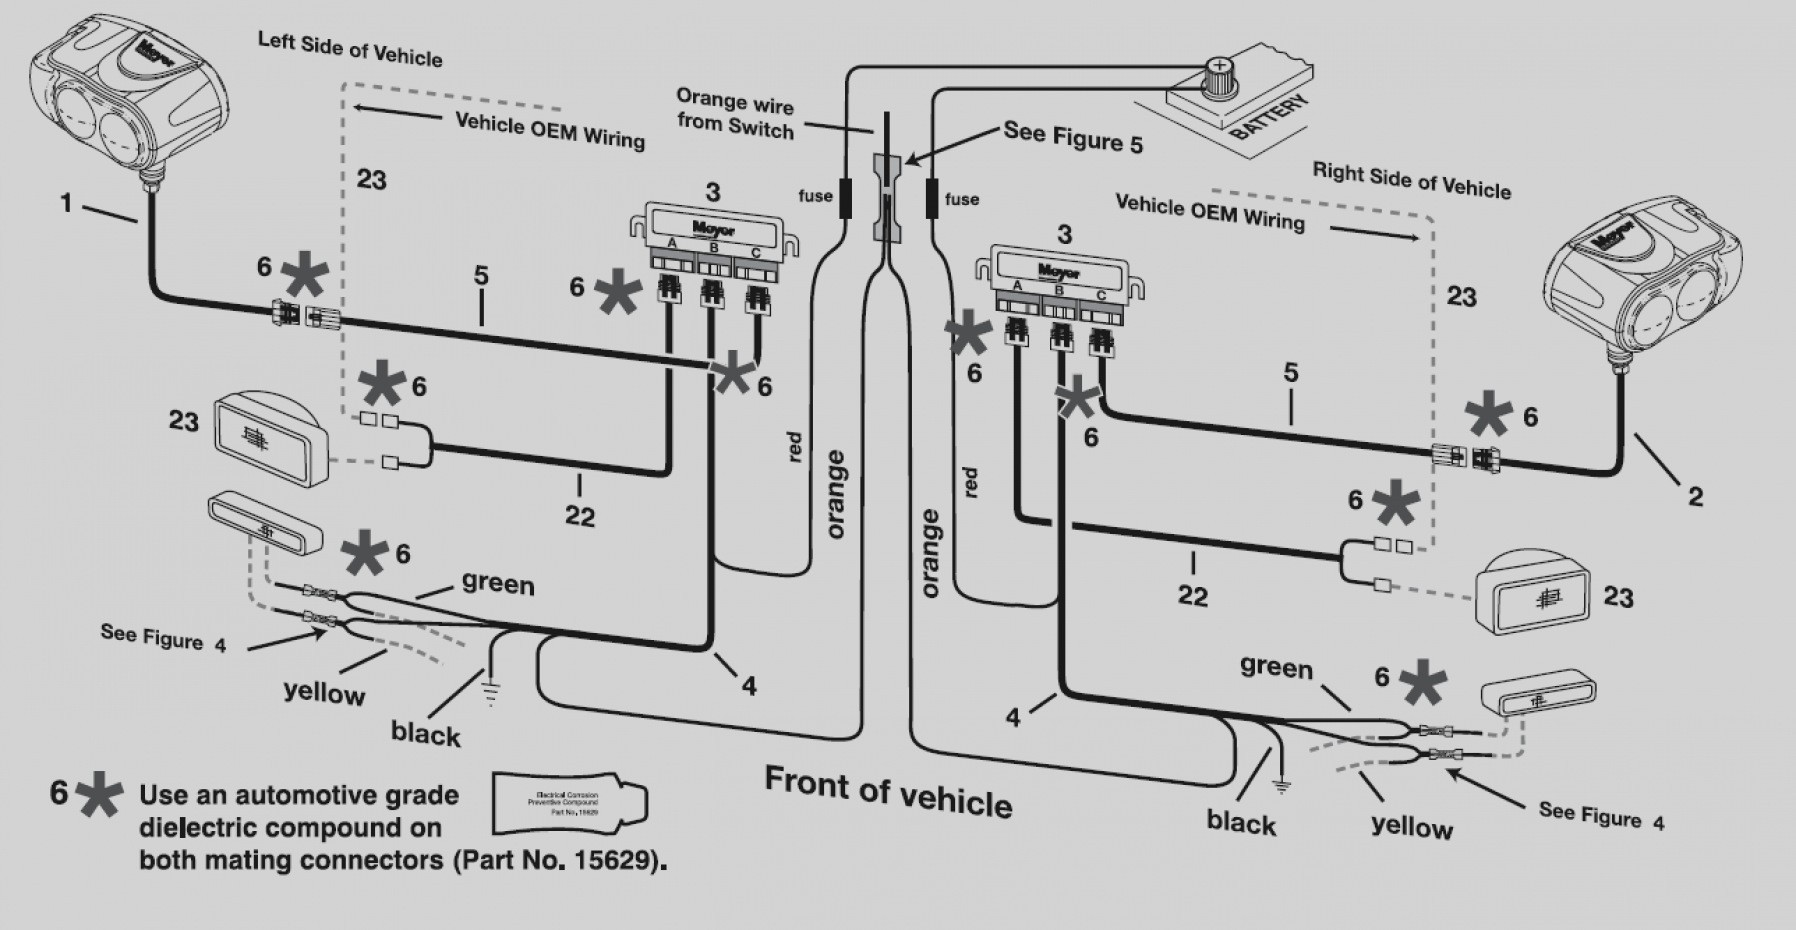 Meyer Plow Wiring Diagram 68 - Schematics Wiring Diagrams •